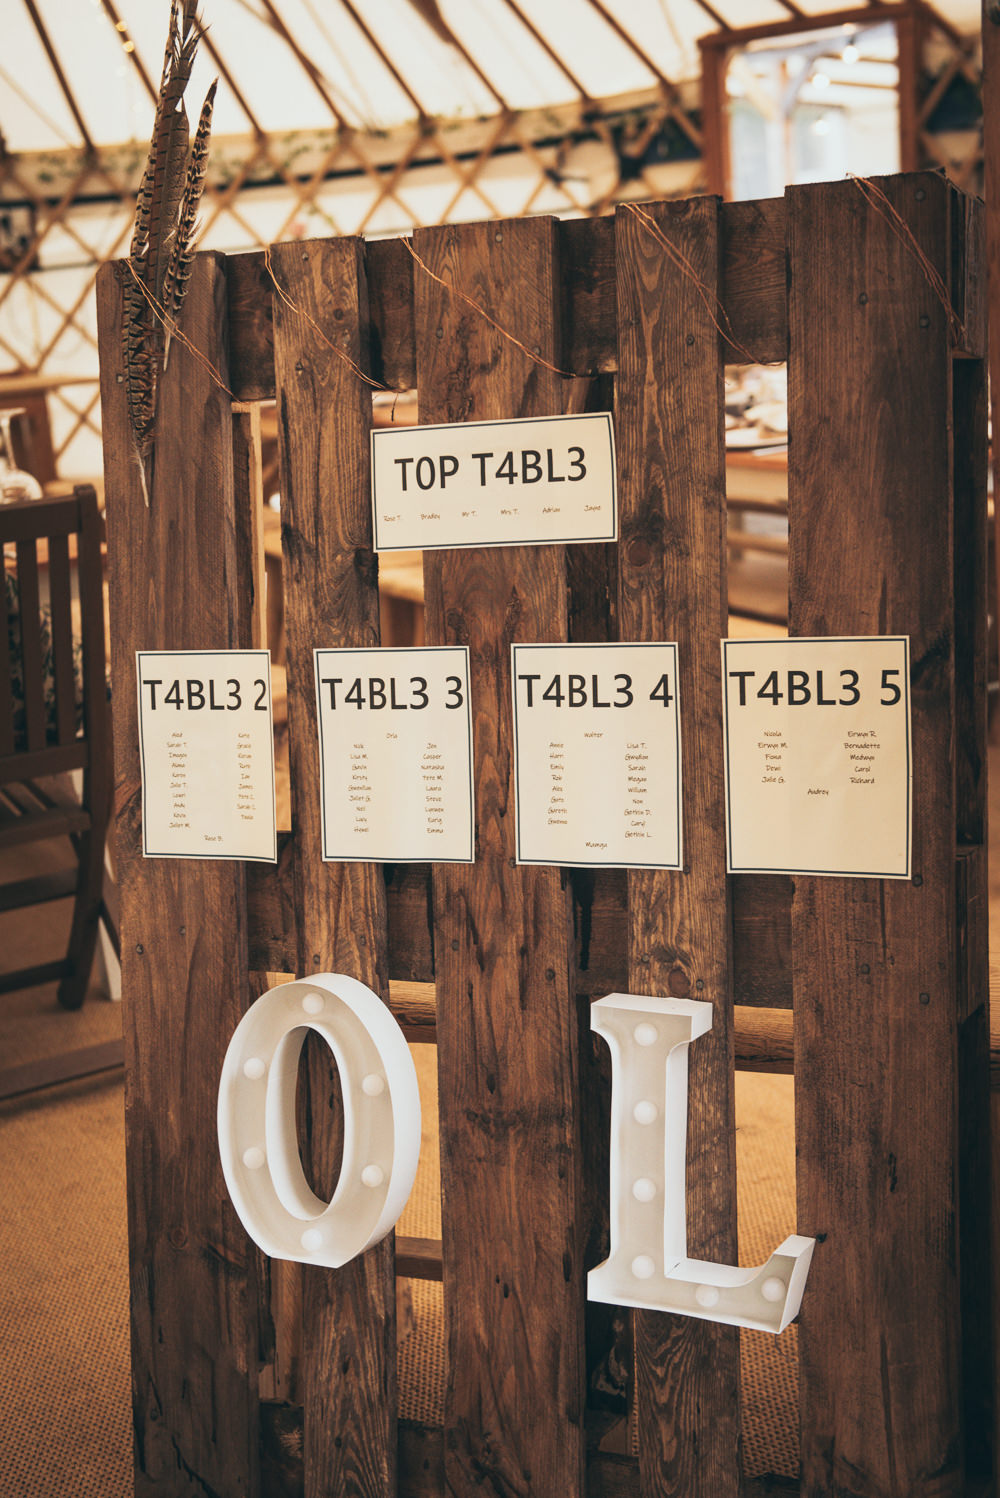 Table Plan Seating Chart Wooden Pallet Fron Farm Yurt Retreat Wedding Cat Arwel Photography